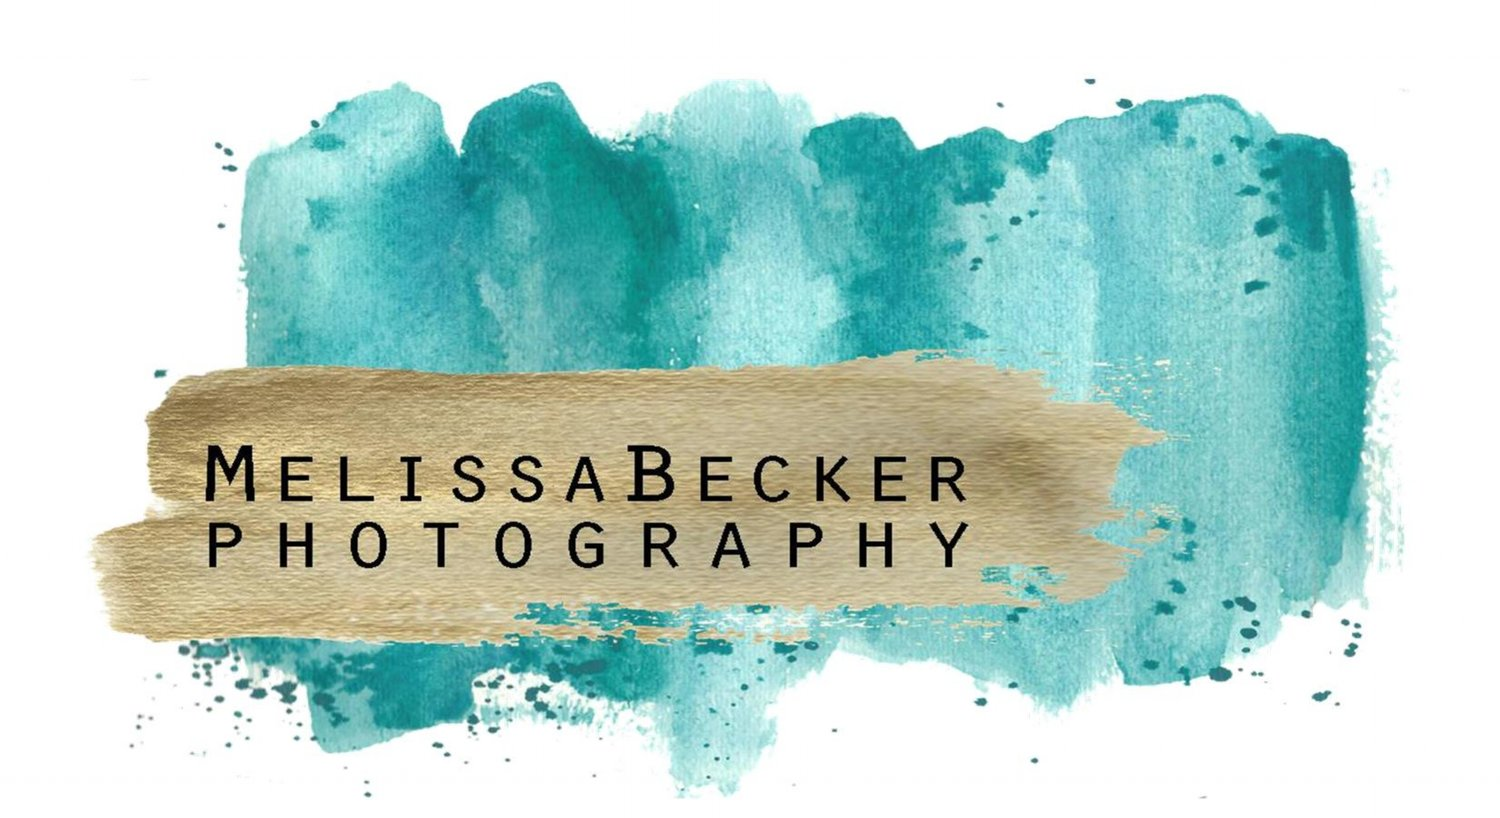 Melissa Becker Photography